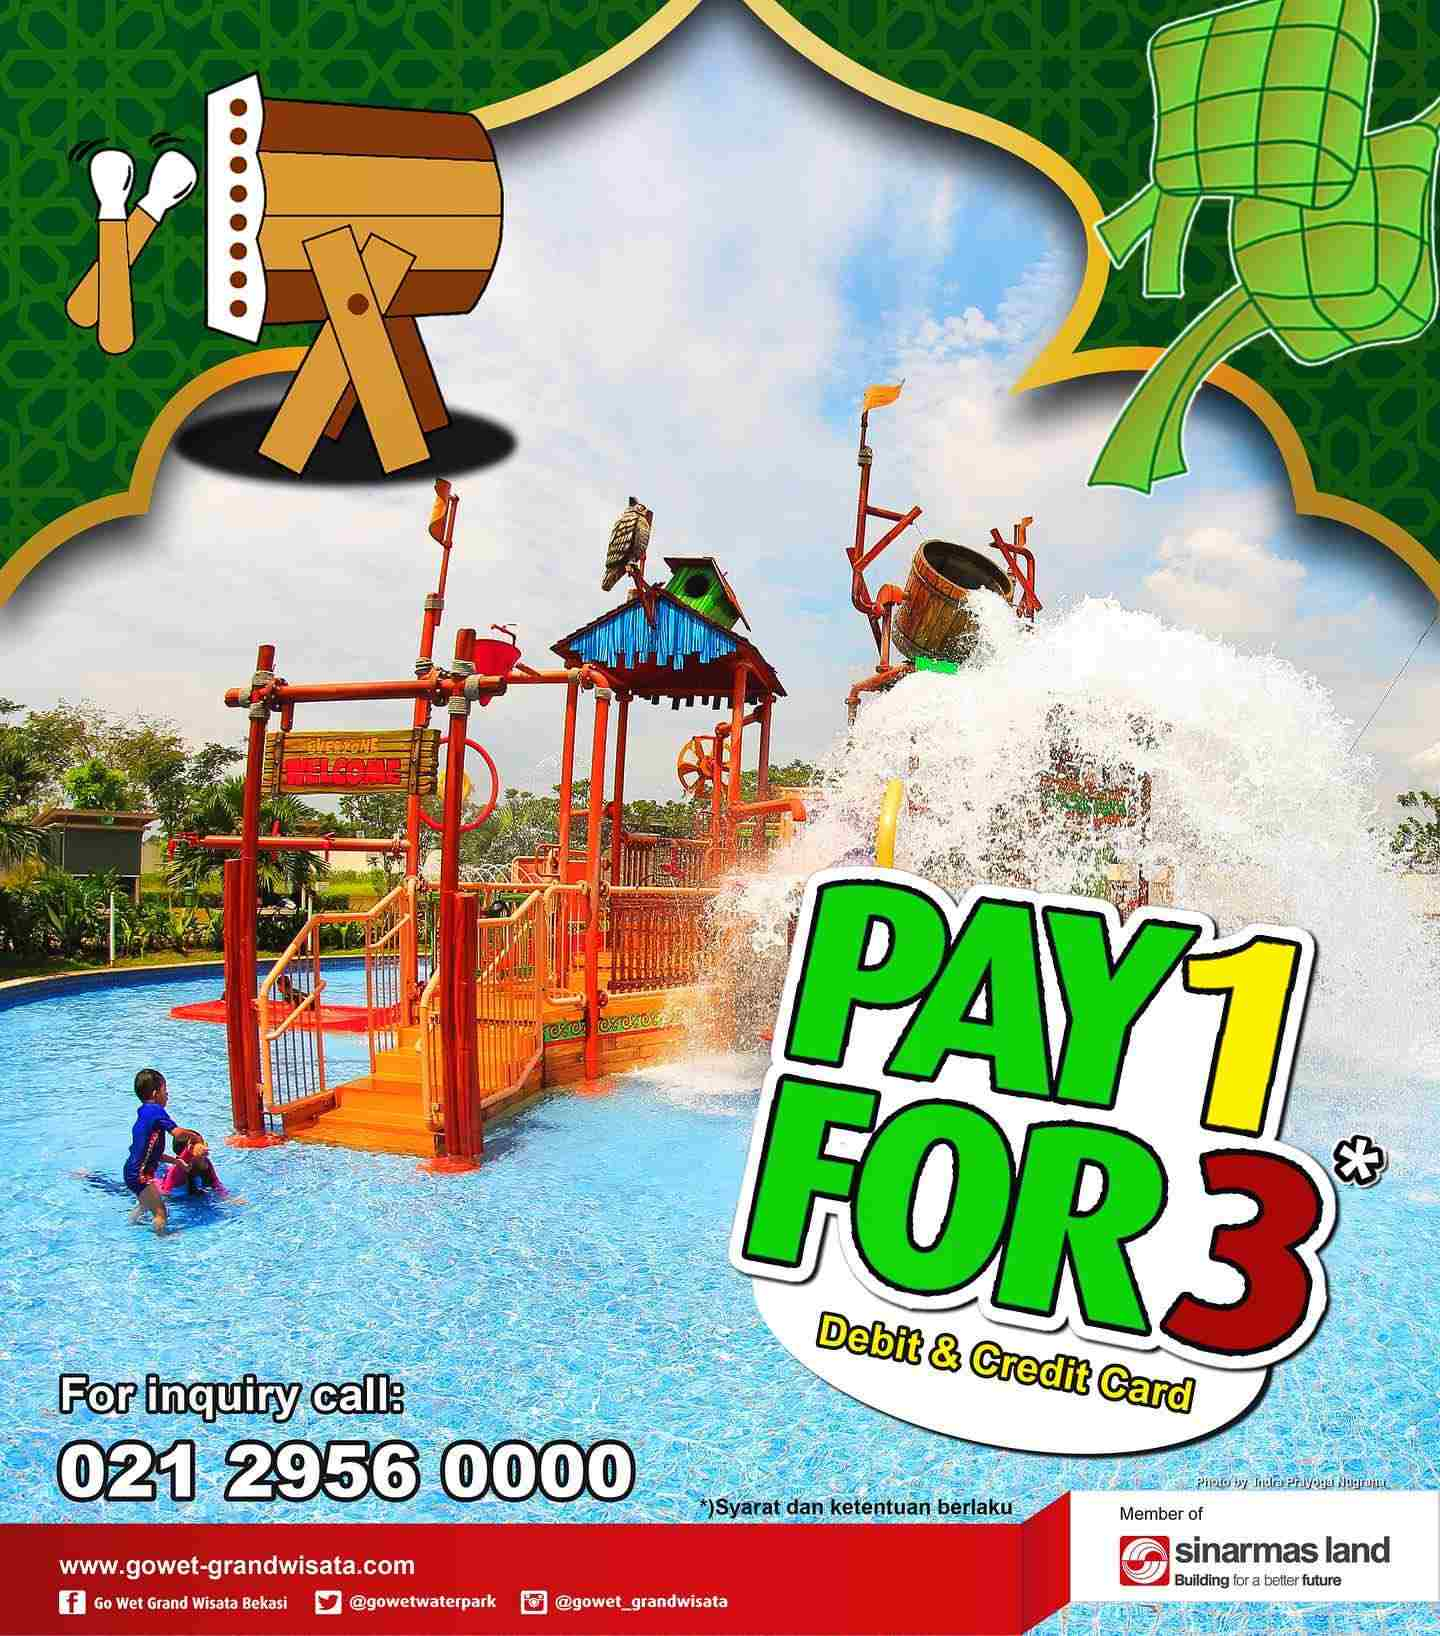 Go Wet Promo Pay 1 For 3 dengan Debit atau Credit Card